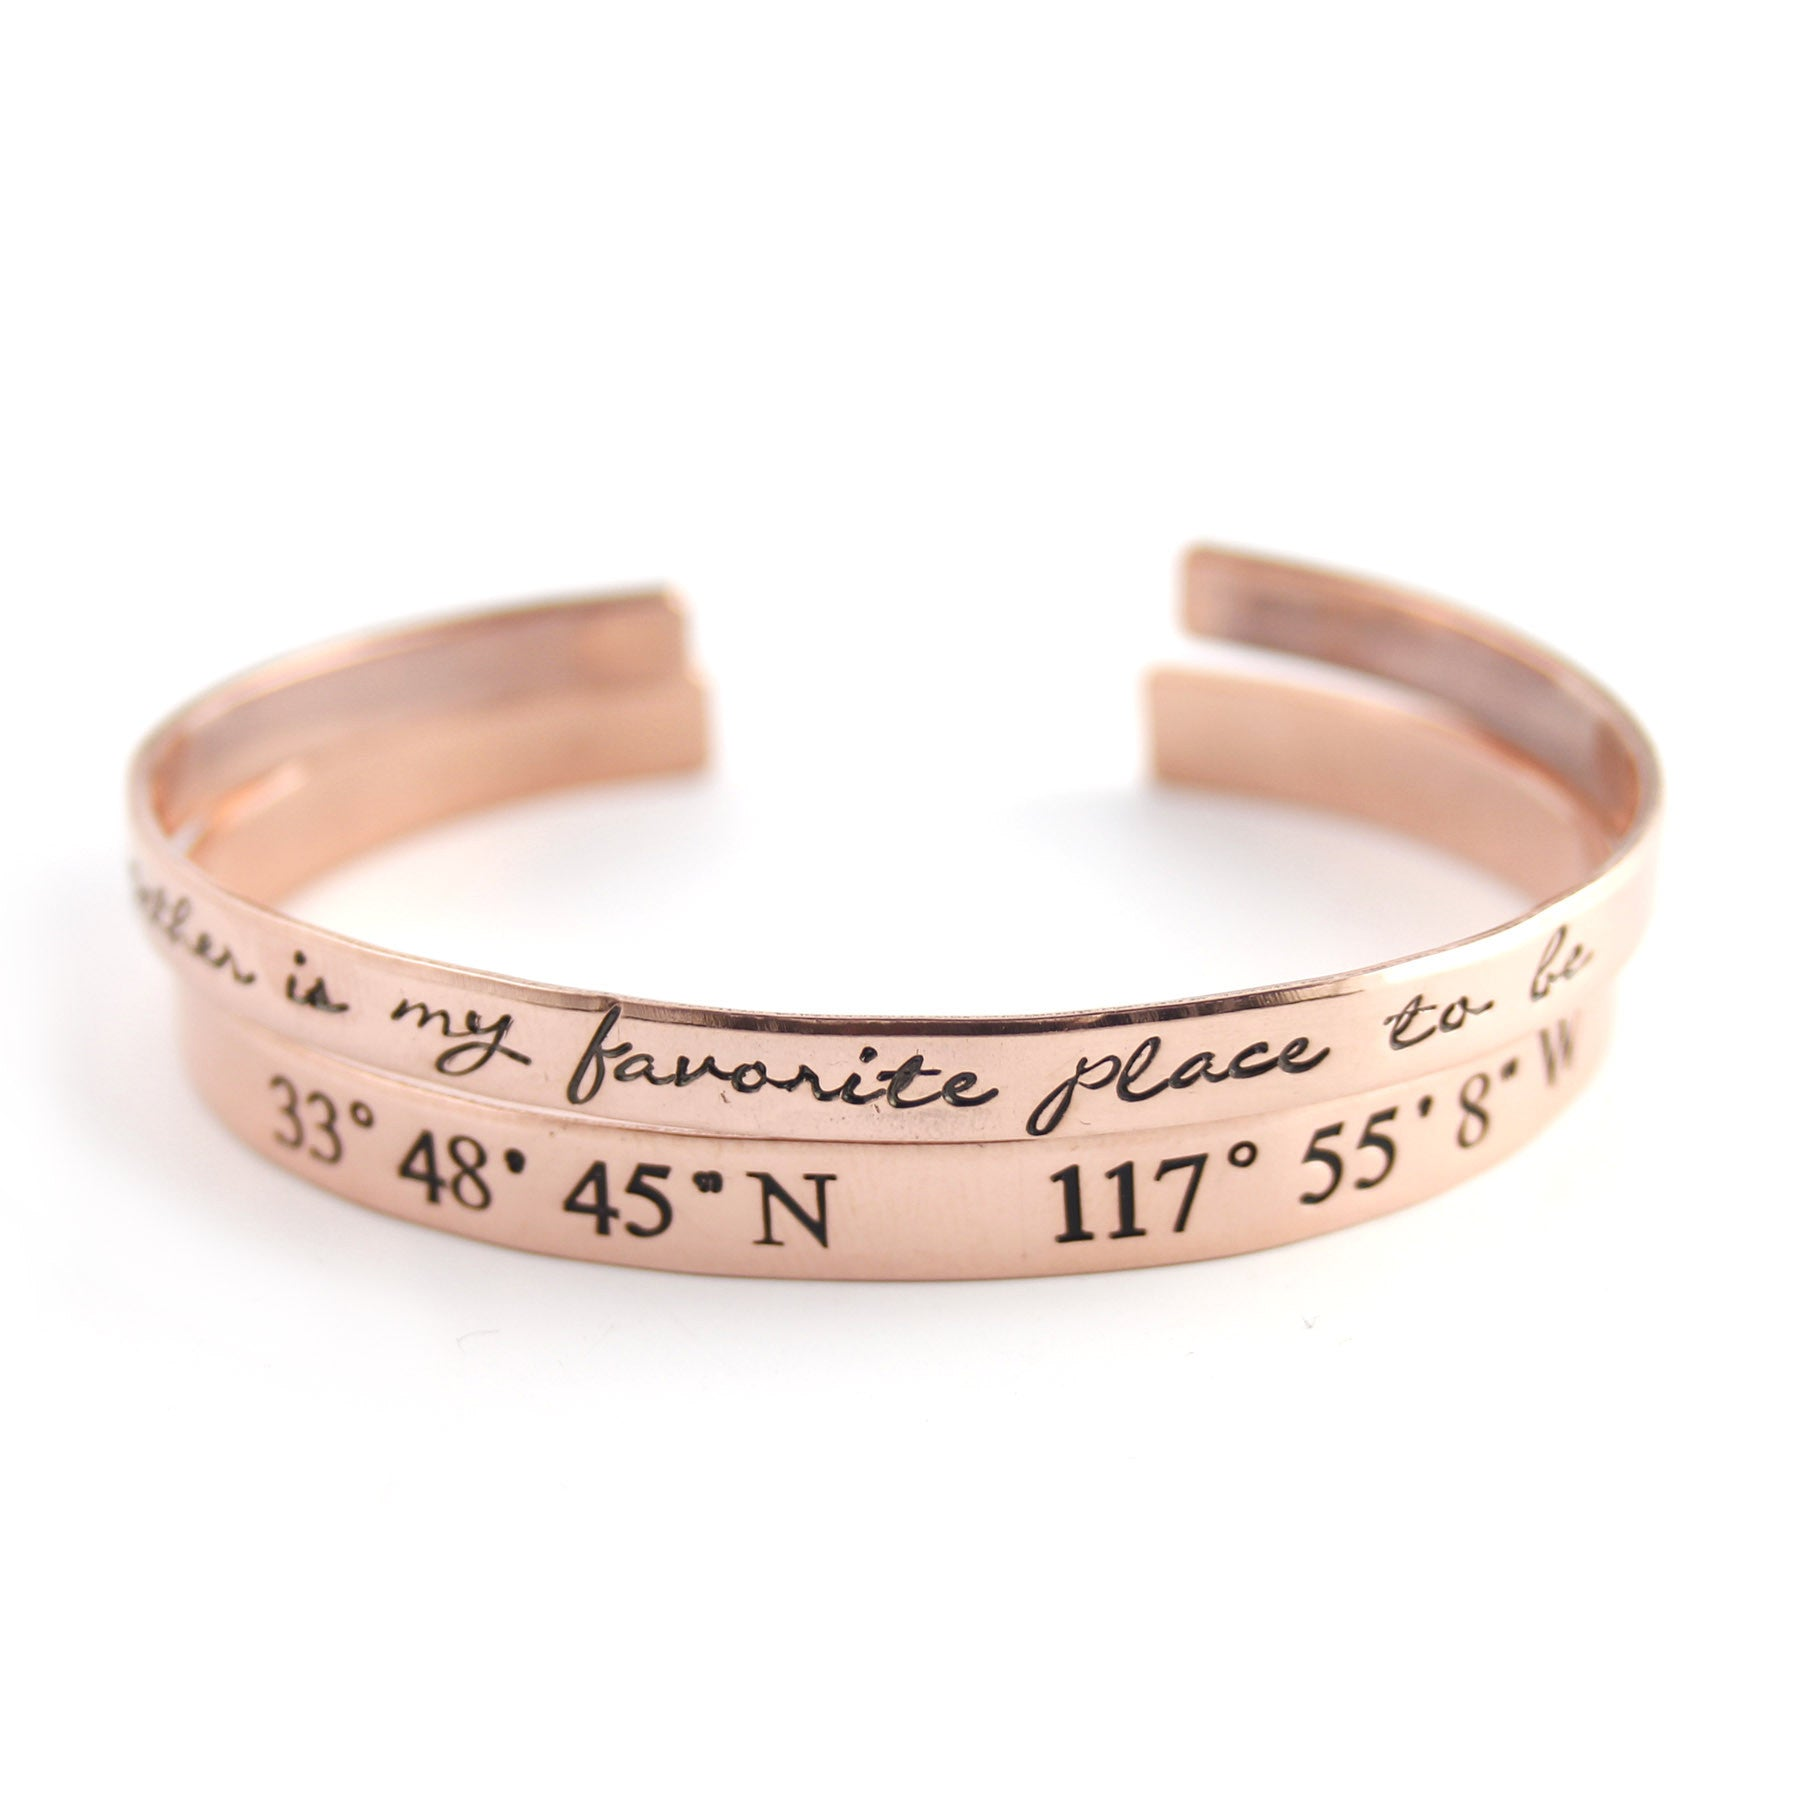 long pin longitude jewelry bracelet gps latitude lat location bangle gold cuff coordinate